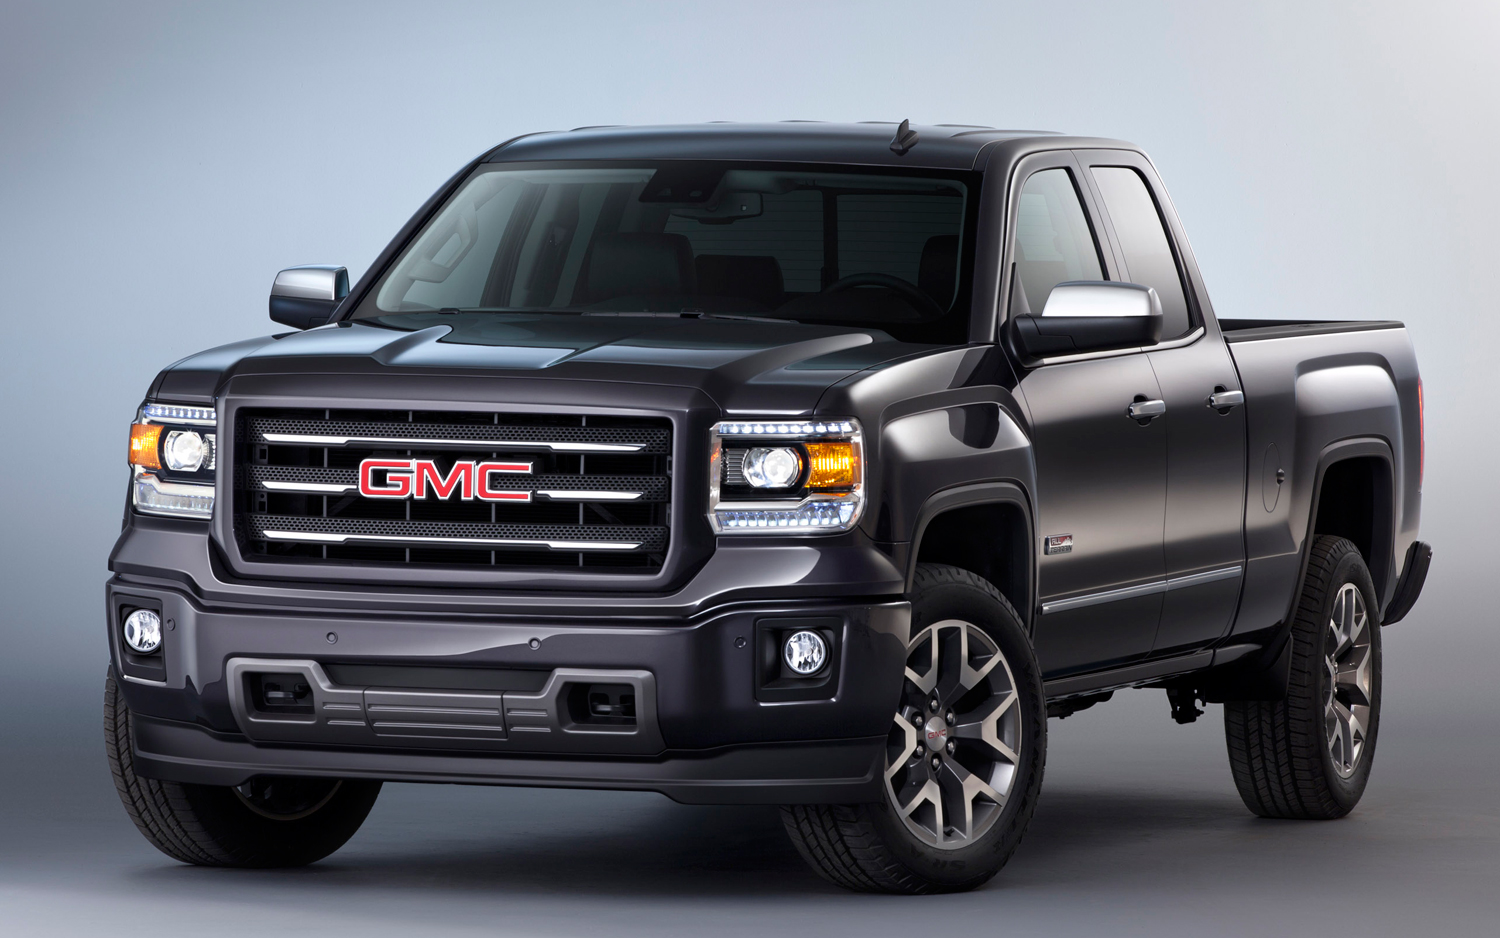 recall chevrolet silverado e gmc sierra 2014 problema. Black Bedroom Furniture Sets. Home Design Ideas